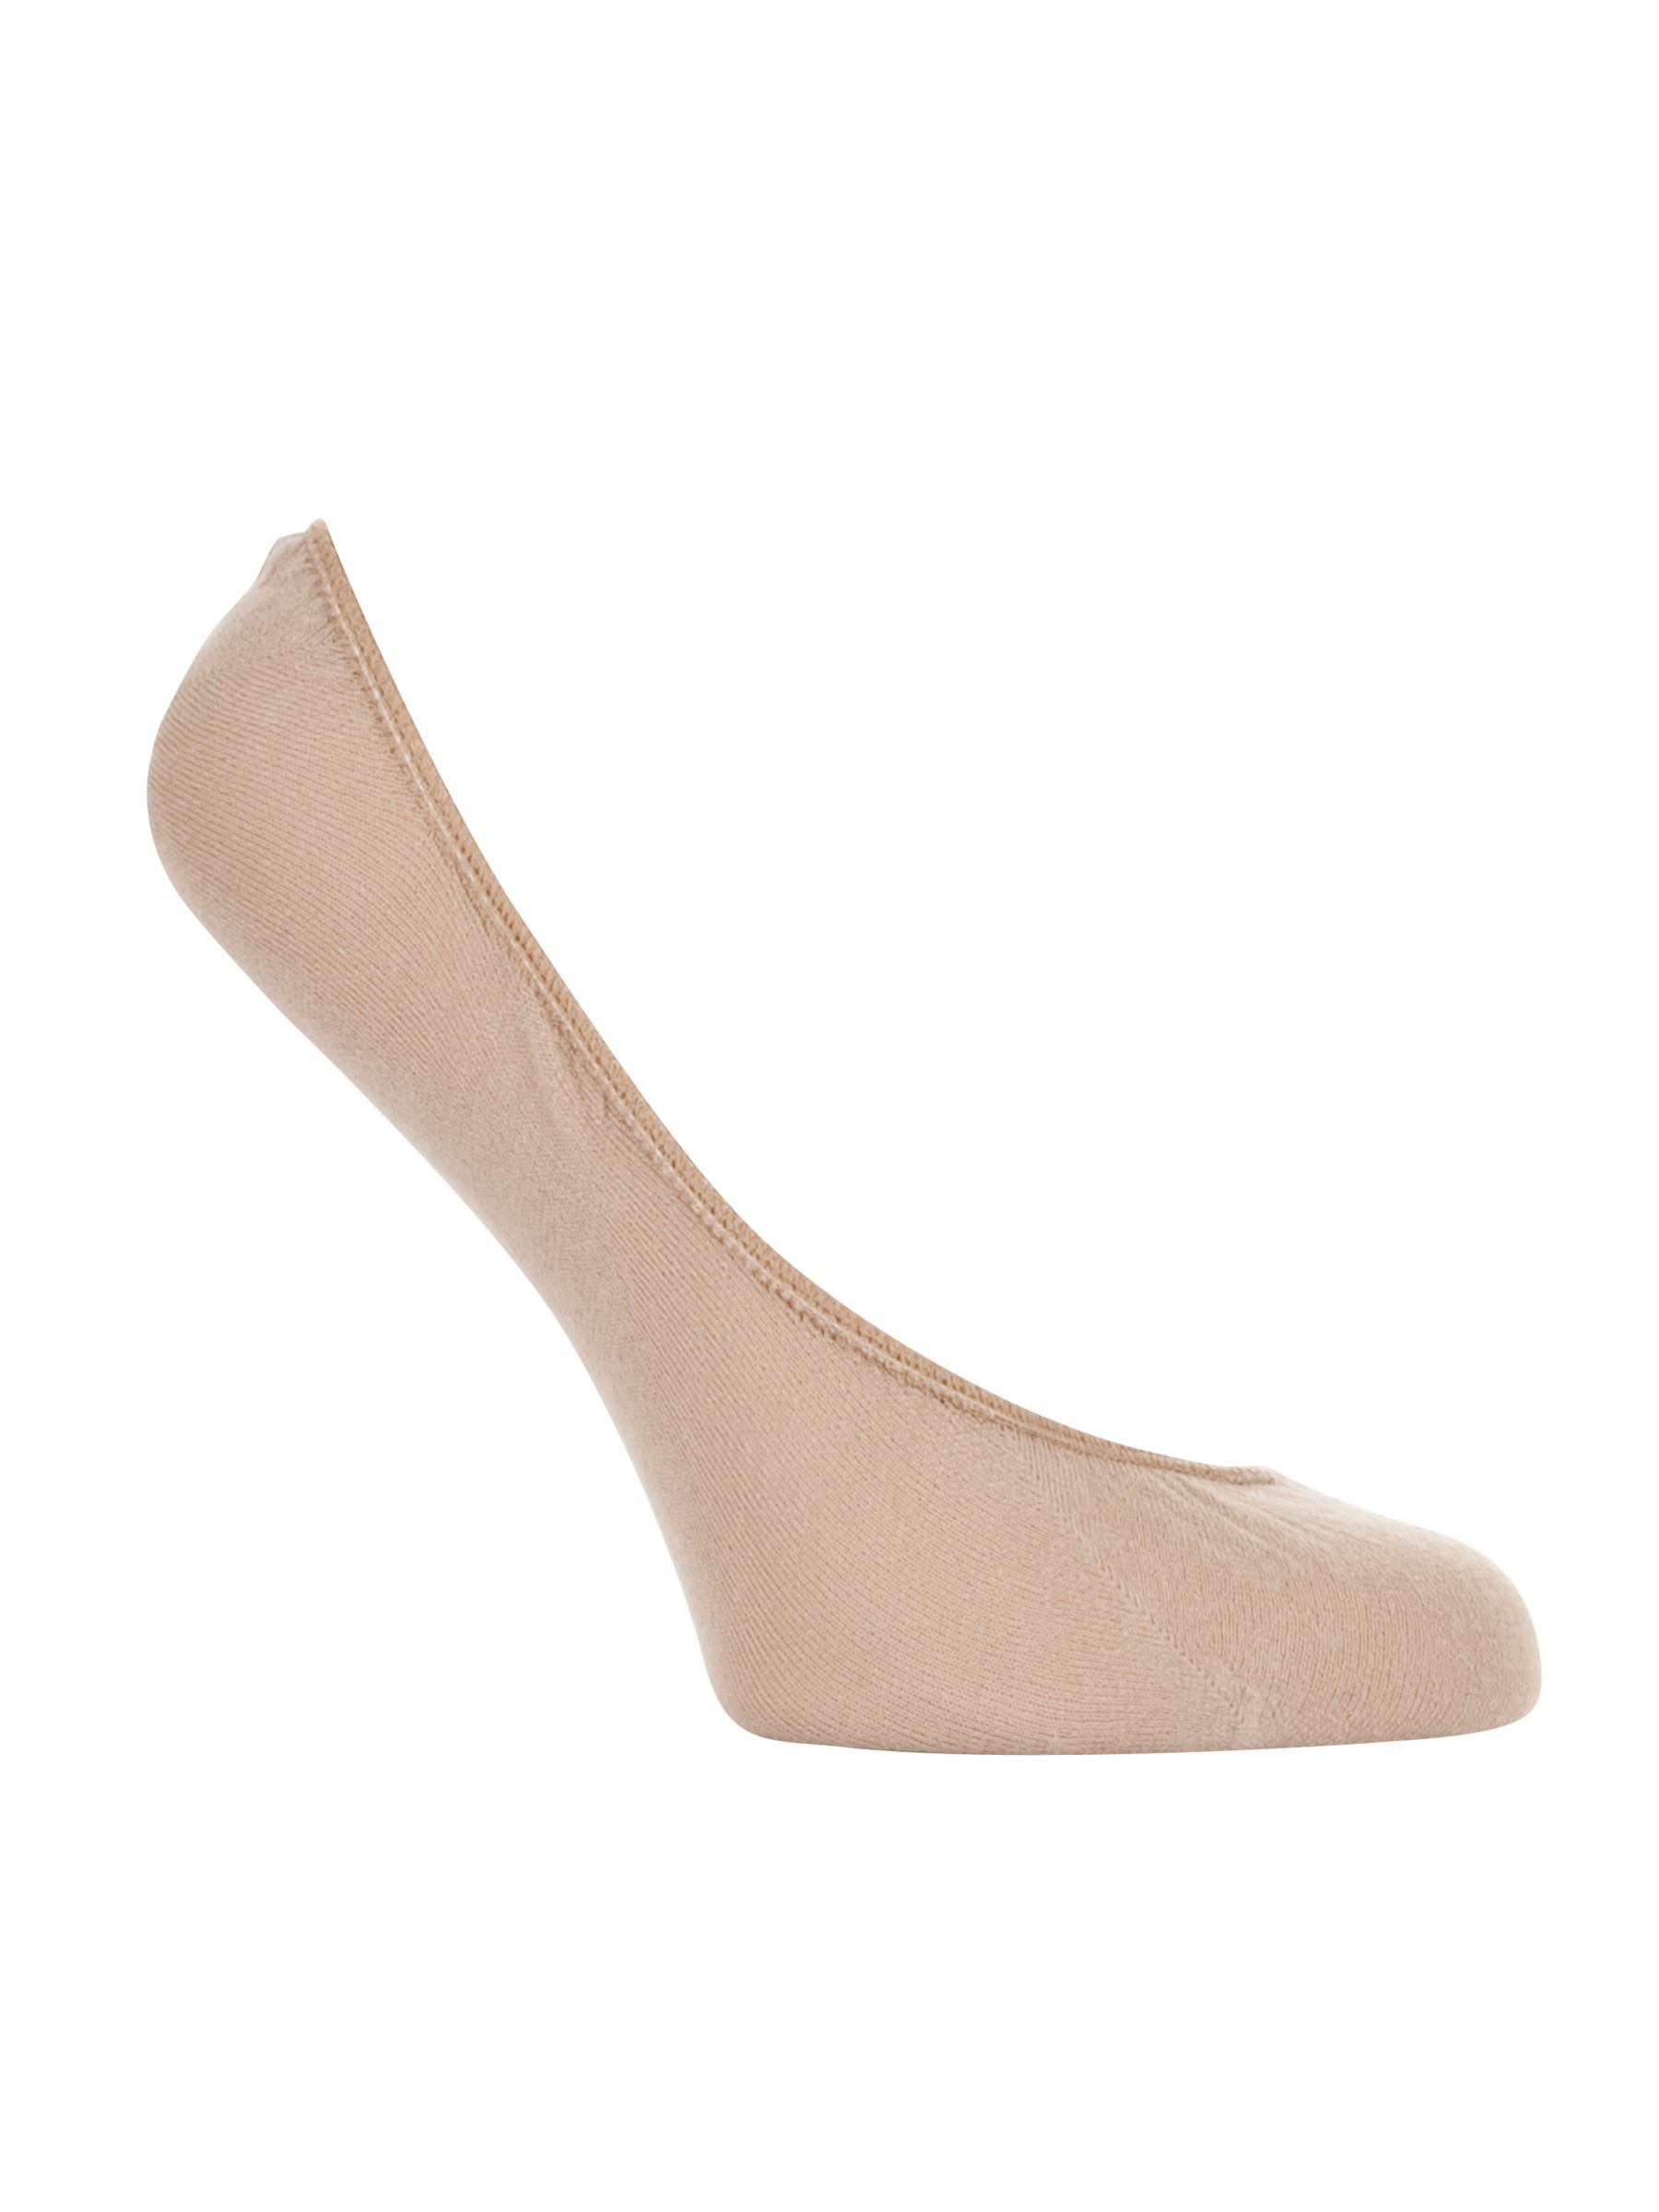 John Lewis Cotton Foot Socks, Nude